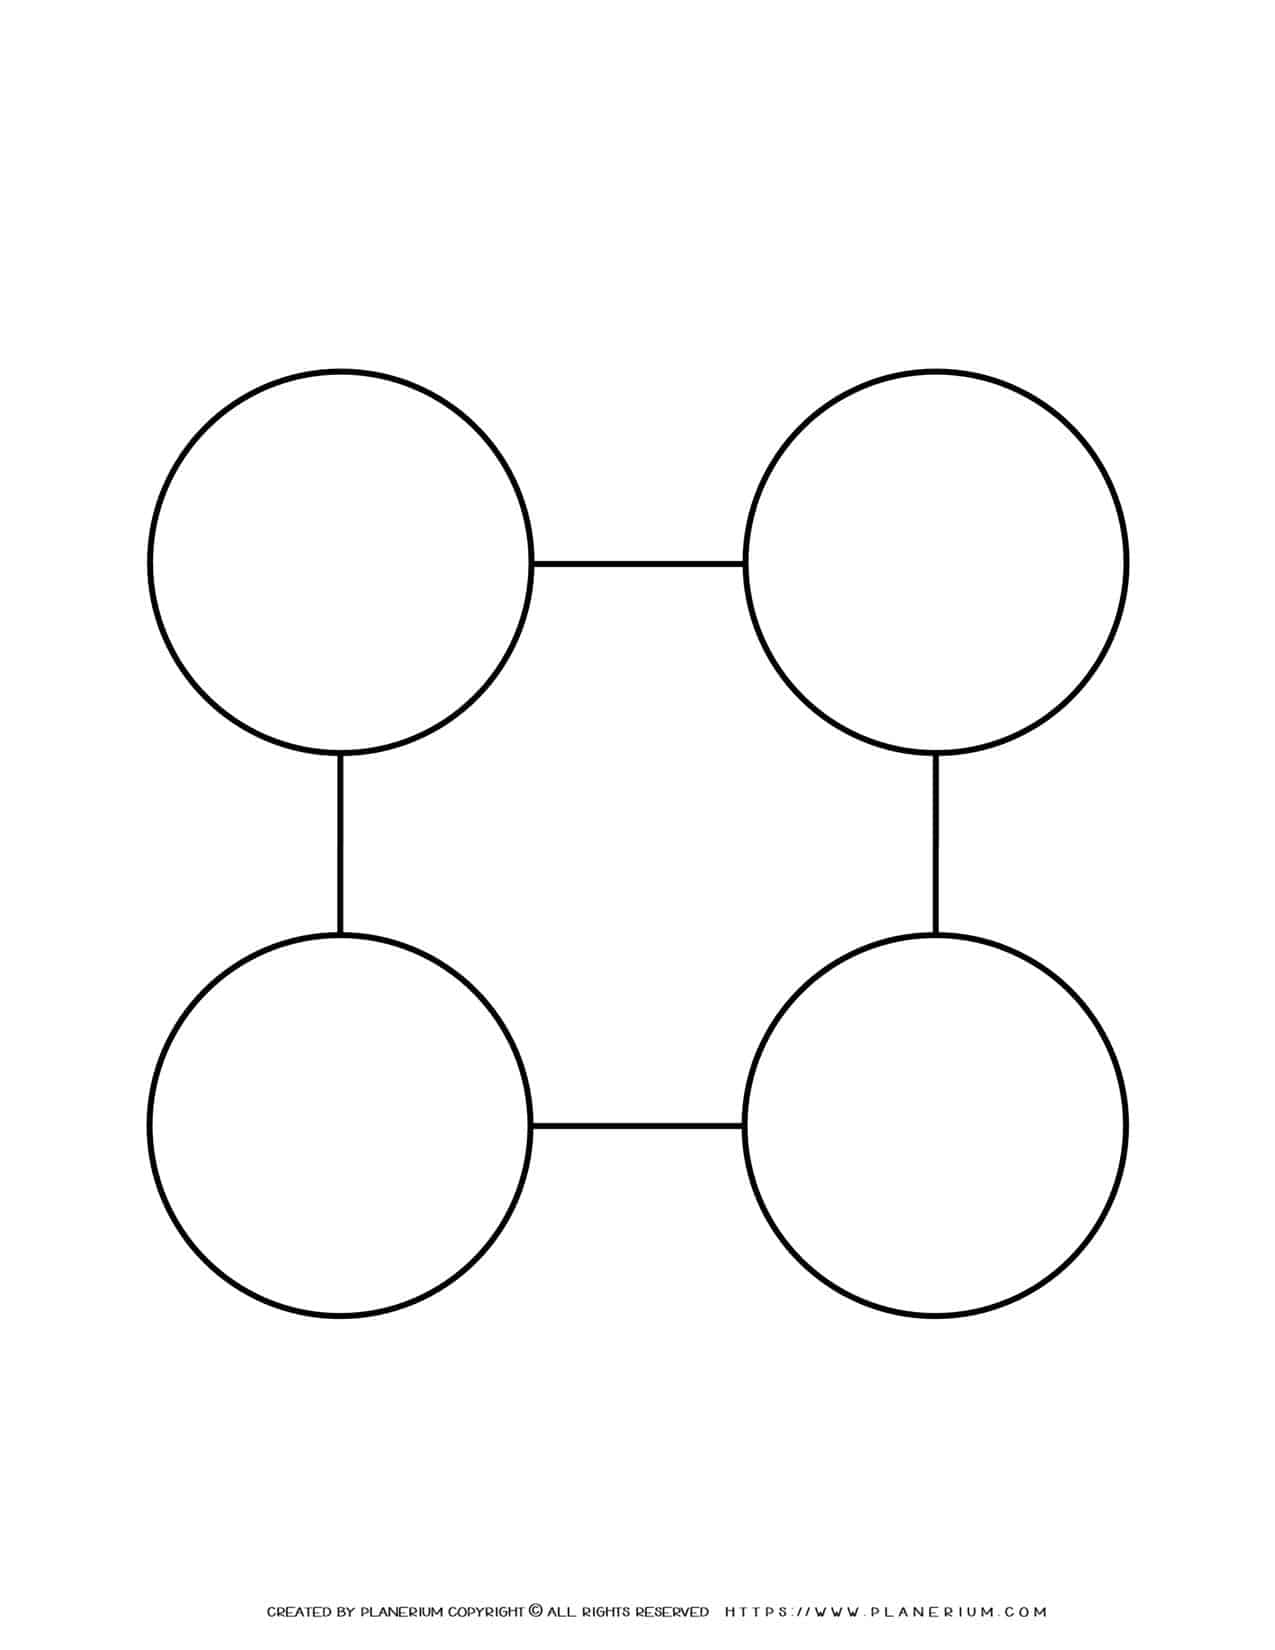 Sequence Chart Template - Four Circles on a Square   Planerium